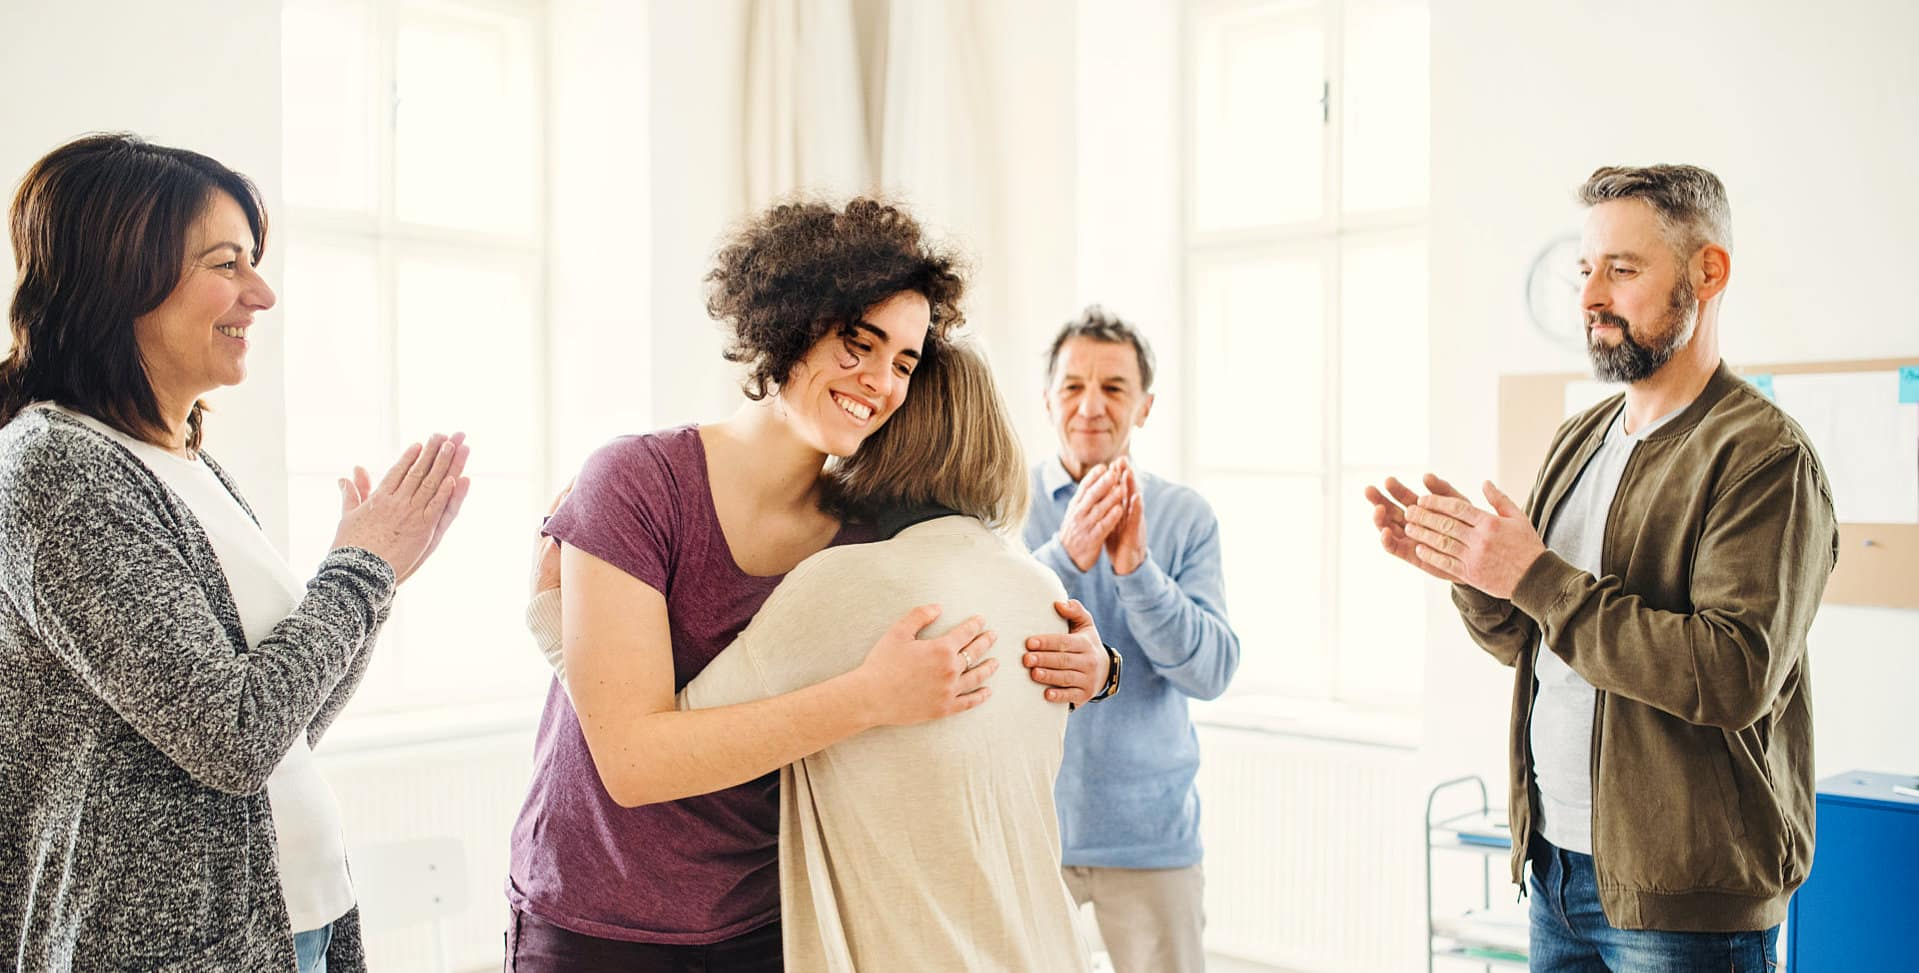 female psychologist hugging the senior woman while the group of people are clupping their hands